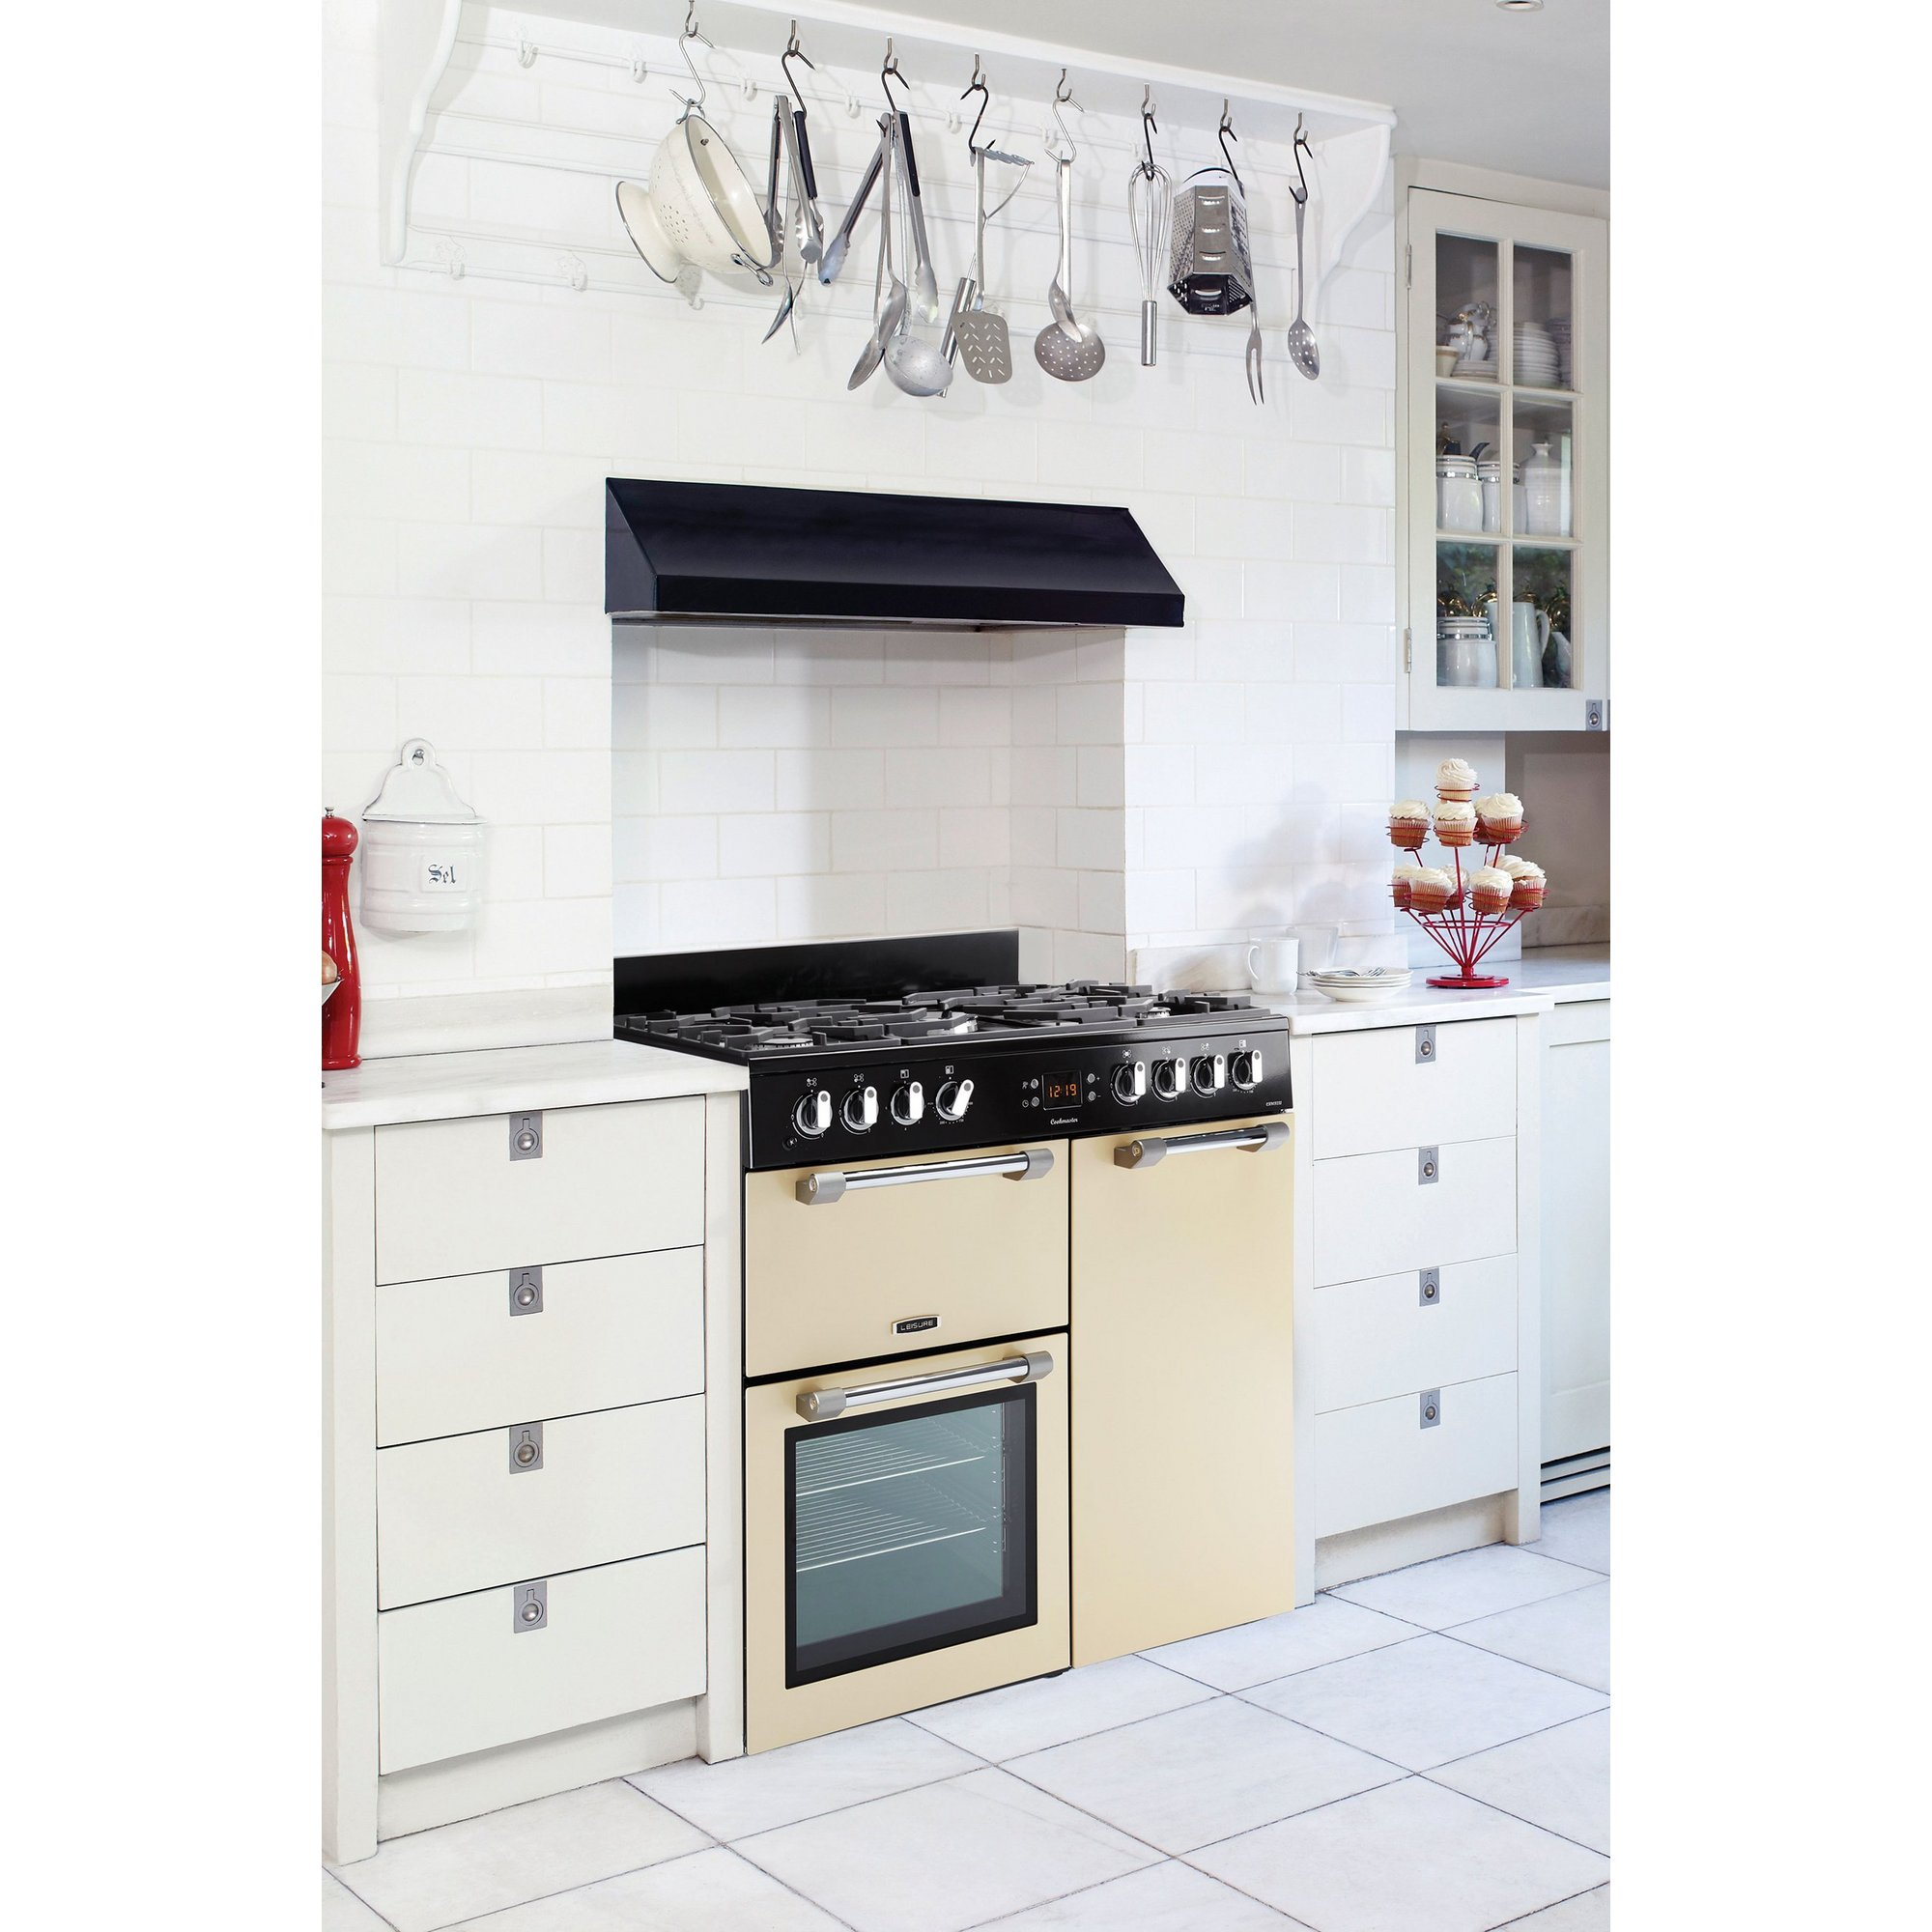 Image of Leisure 90cm Cookmaster Dual Fuel Range Cooker